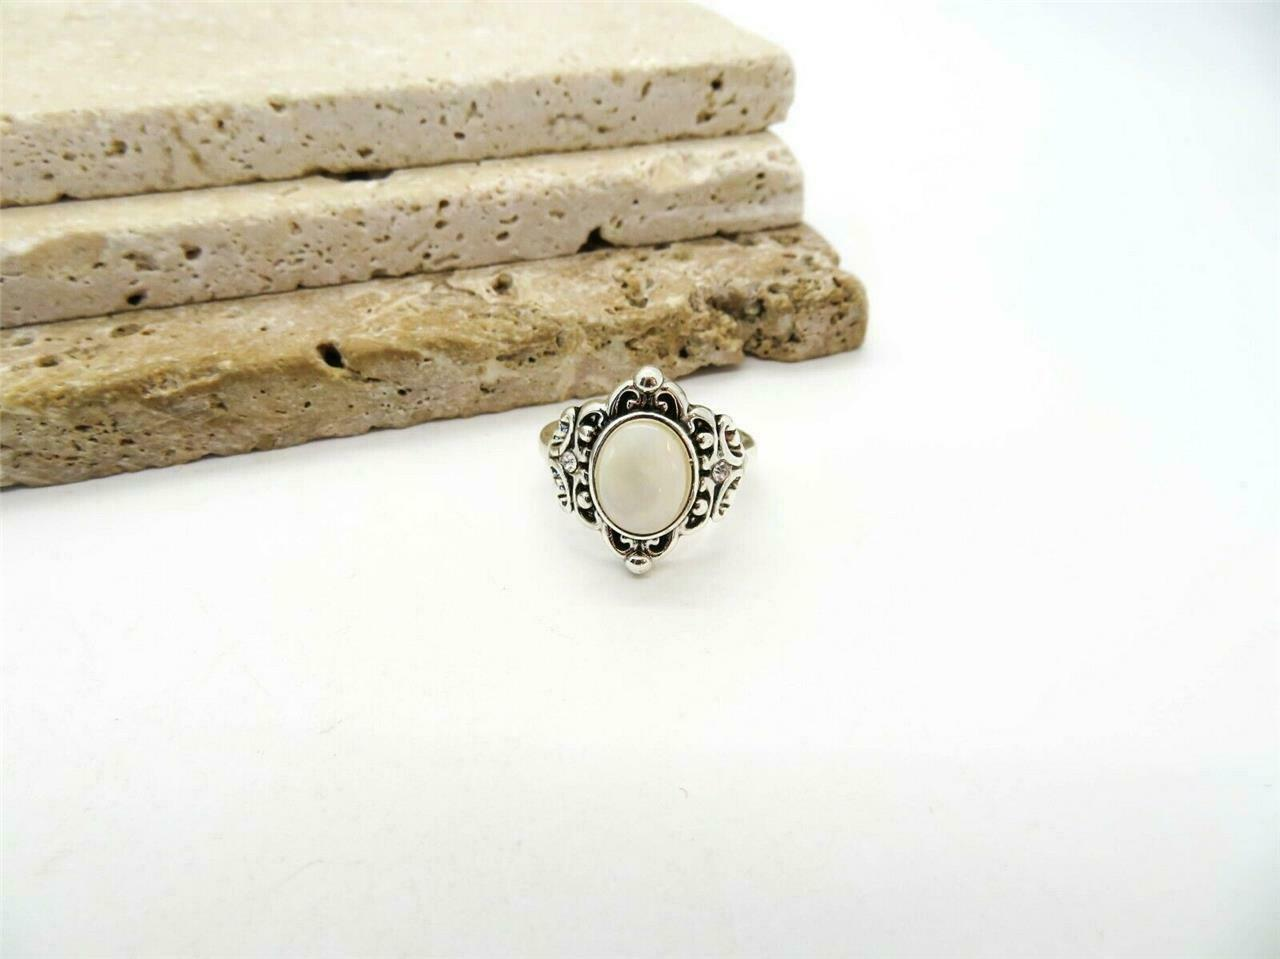 Vintage Silver Tone Ring with a Purple Stone or Glass Cabochon Size 9.5